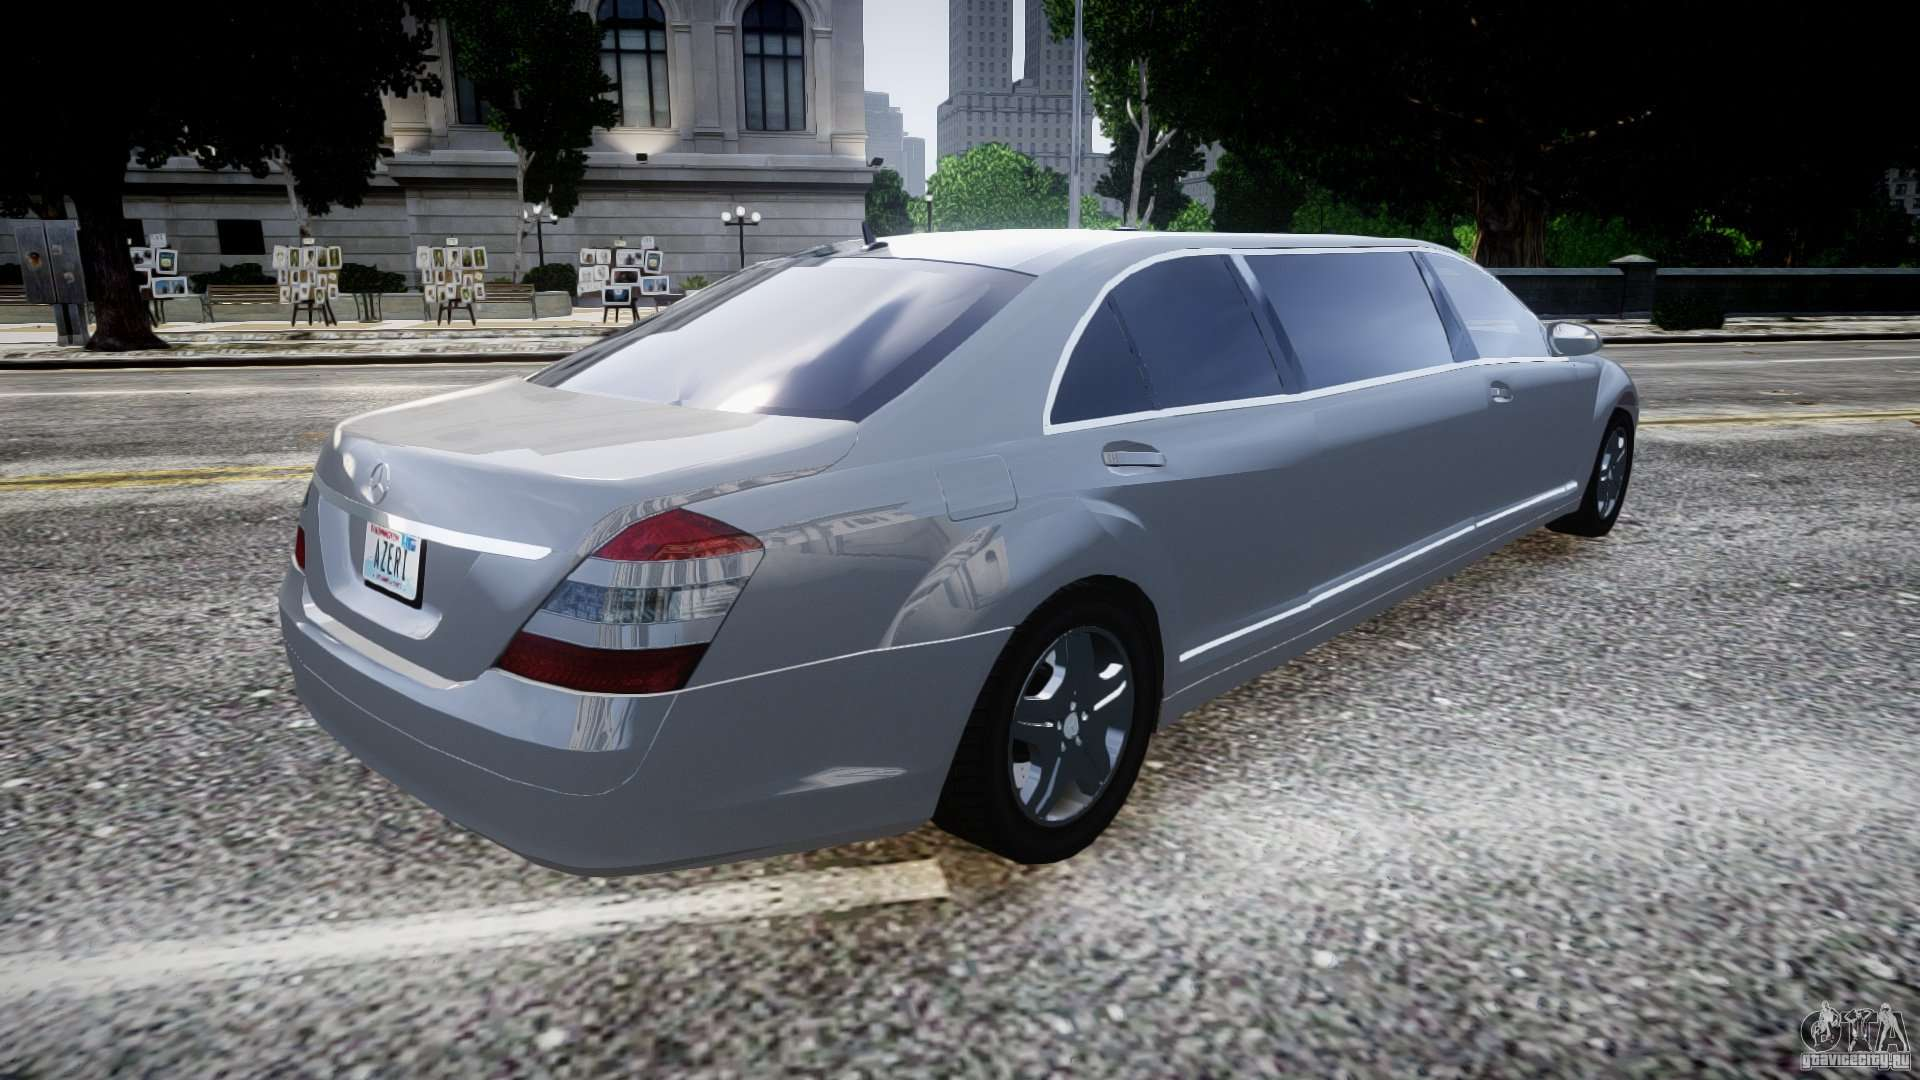 Mercedes benz s600 guard pullman 2008 for gta 4 for S600 mercedes benz